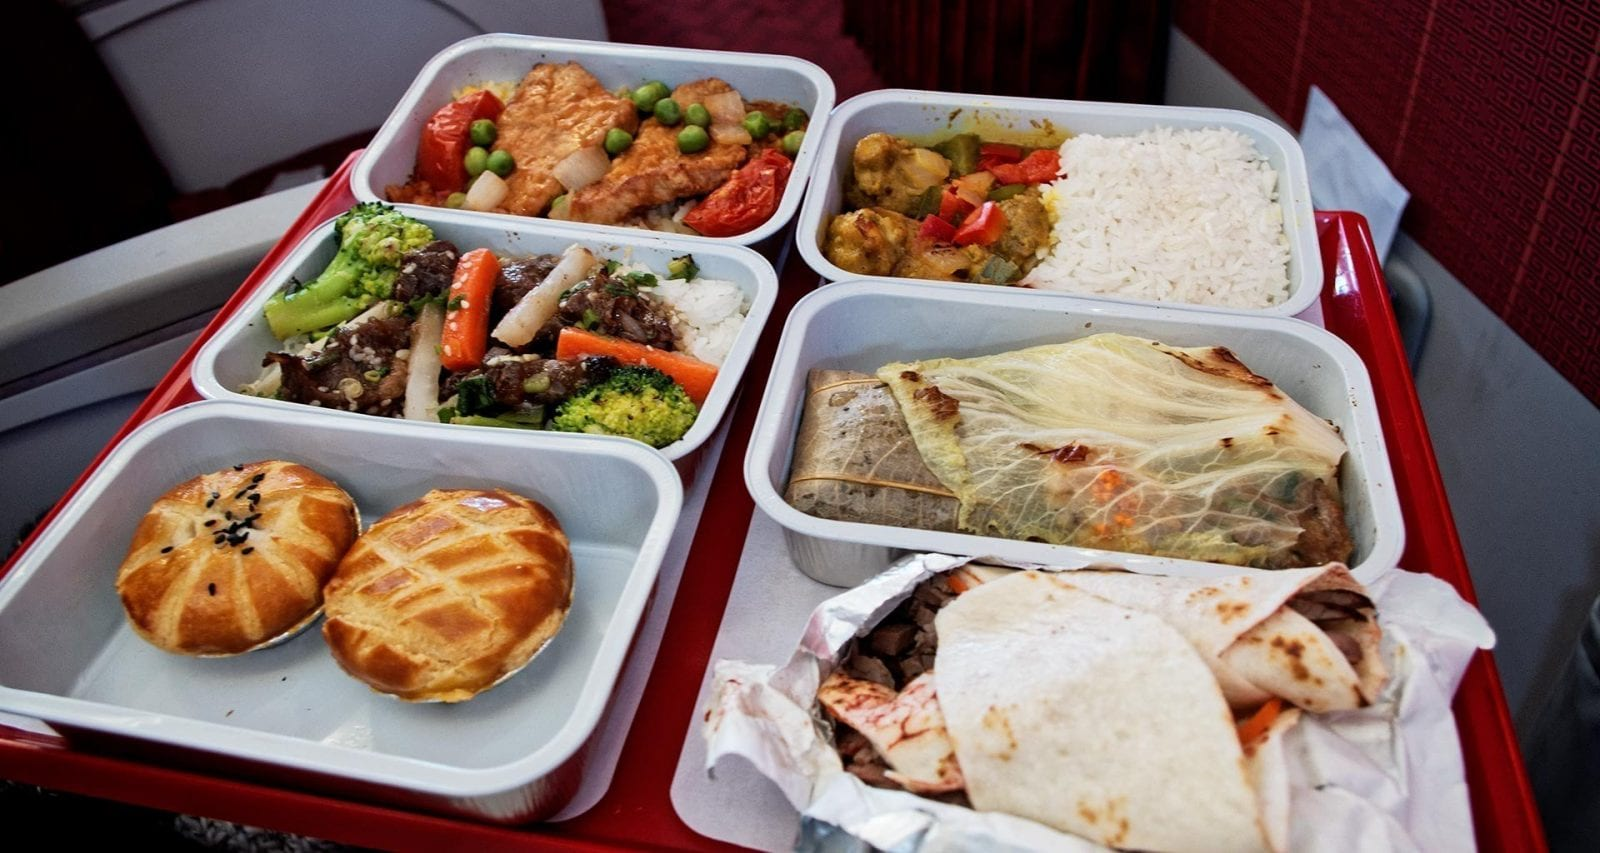 Hong Kong Express Airlines pre order meals.